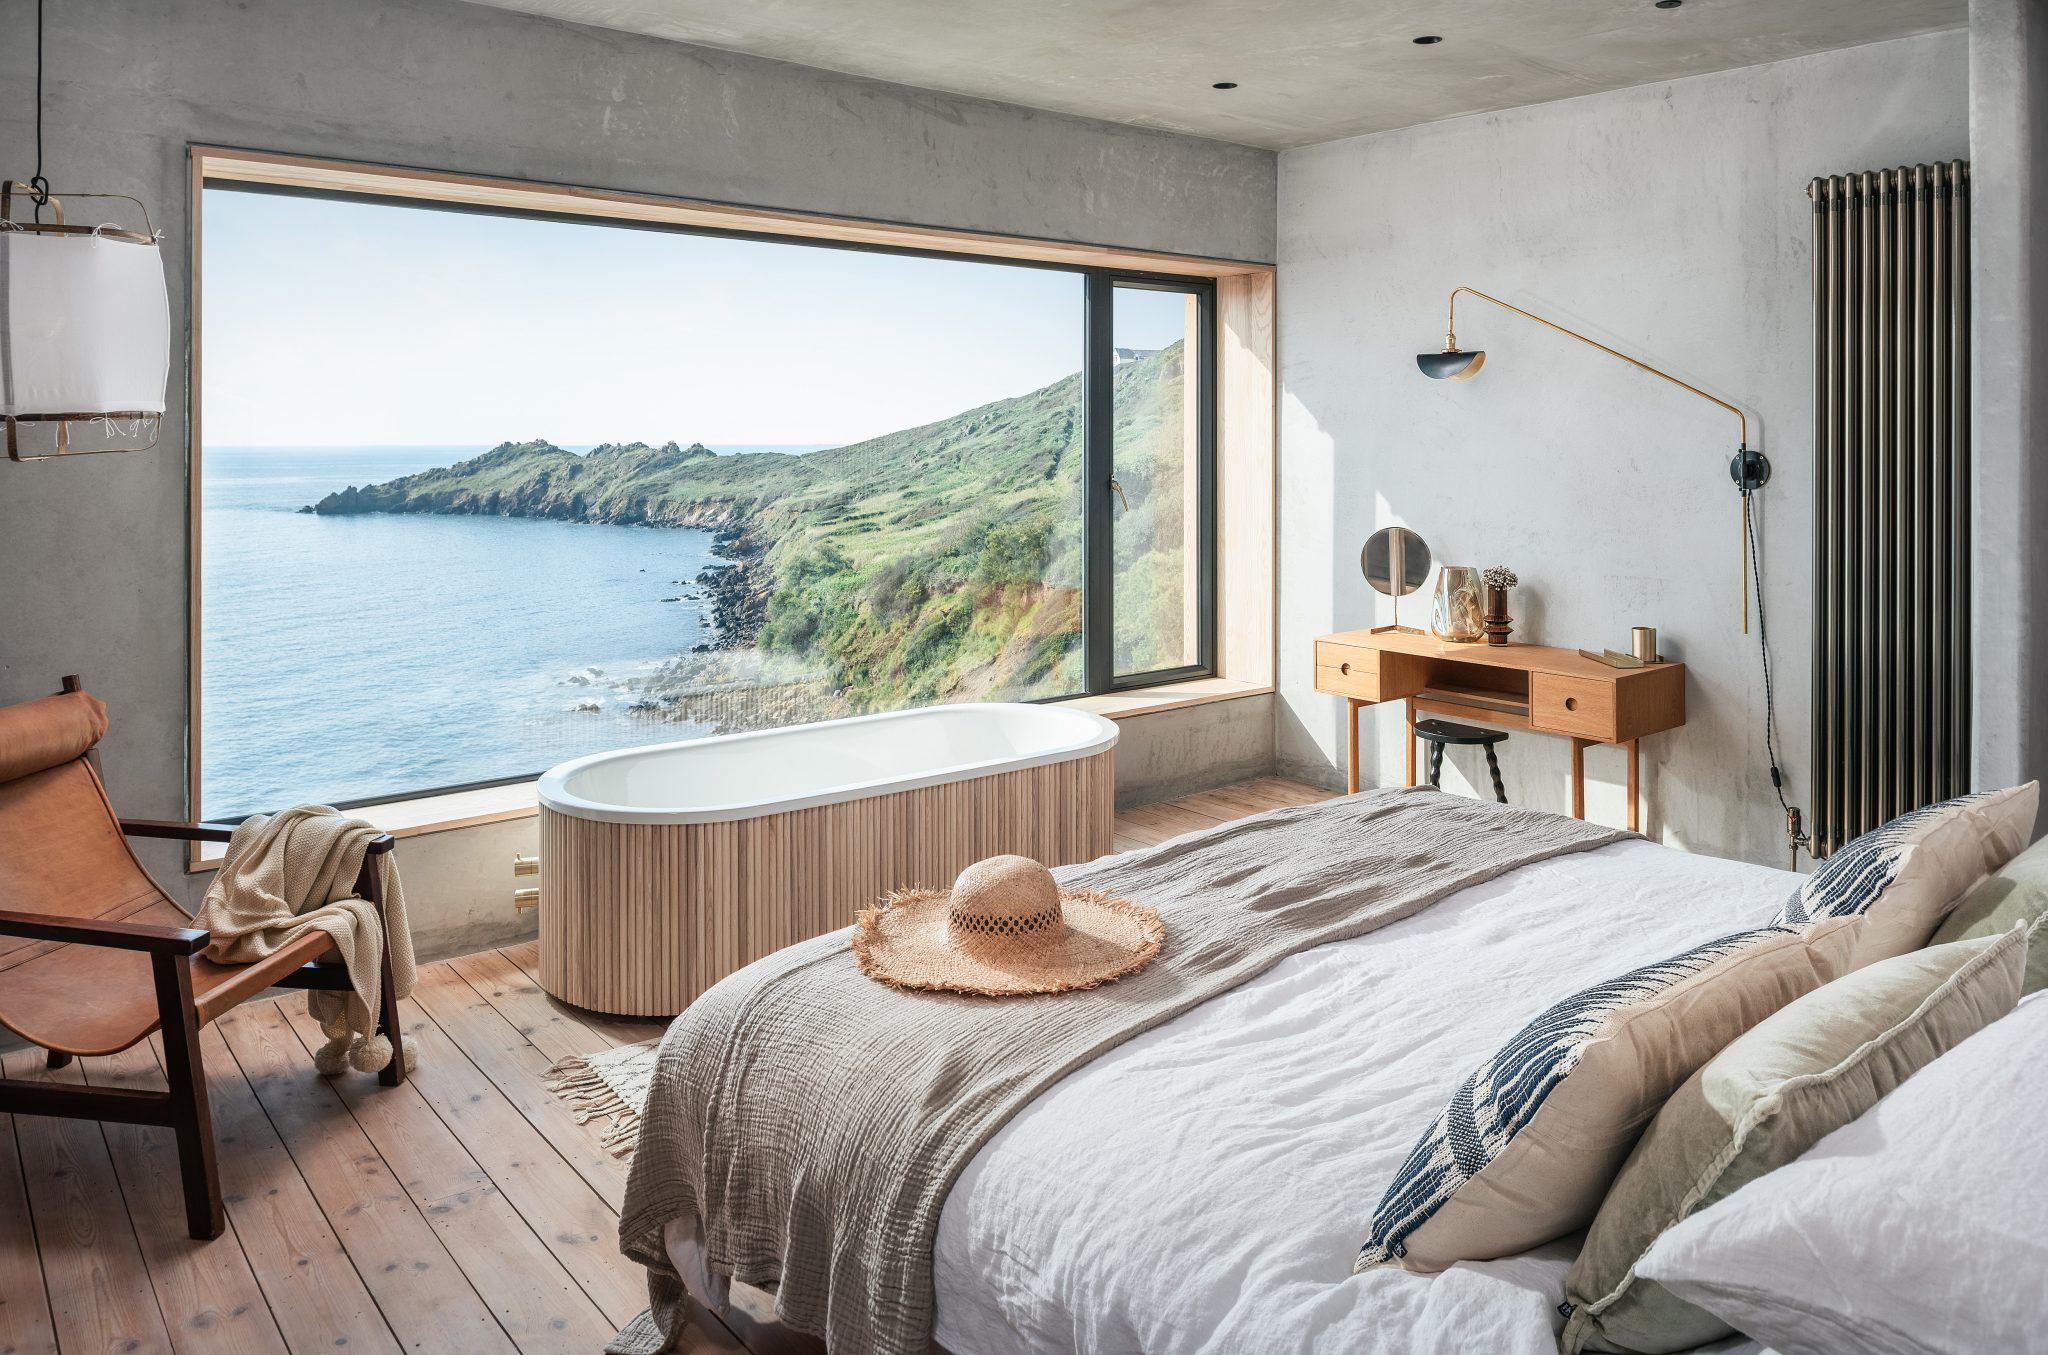 A bath in front of a window in a minimalist bedroom at Ukiyo Beach House in Cornwall.